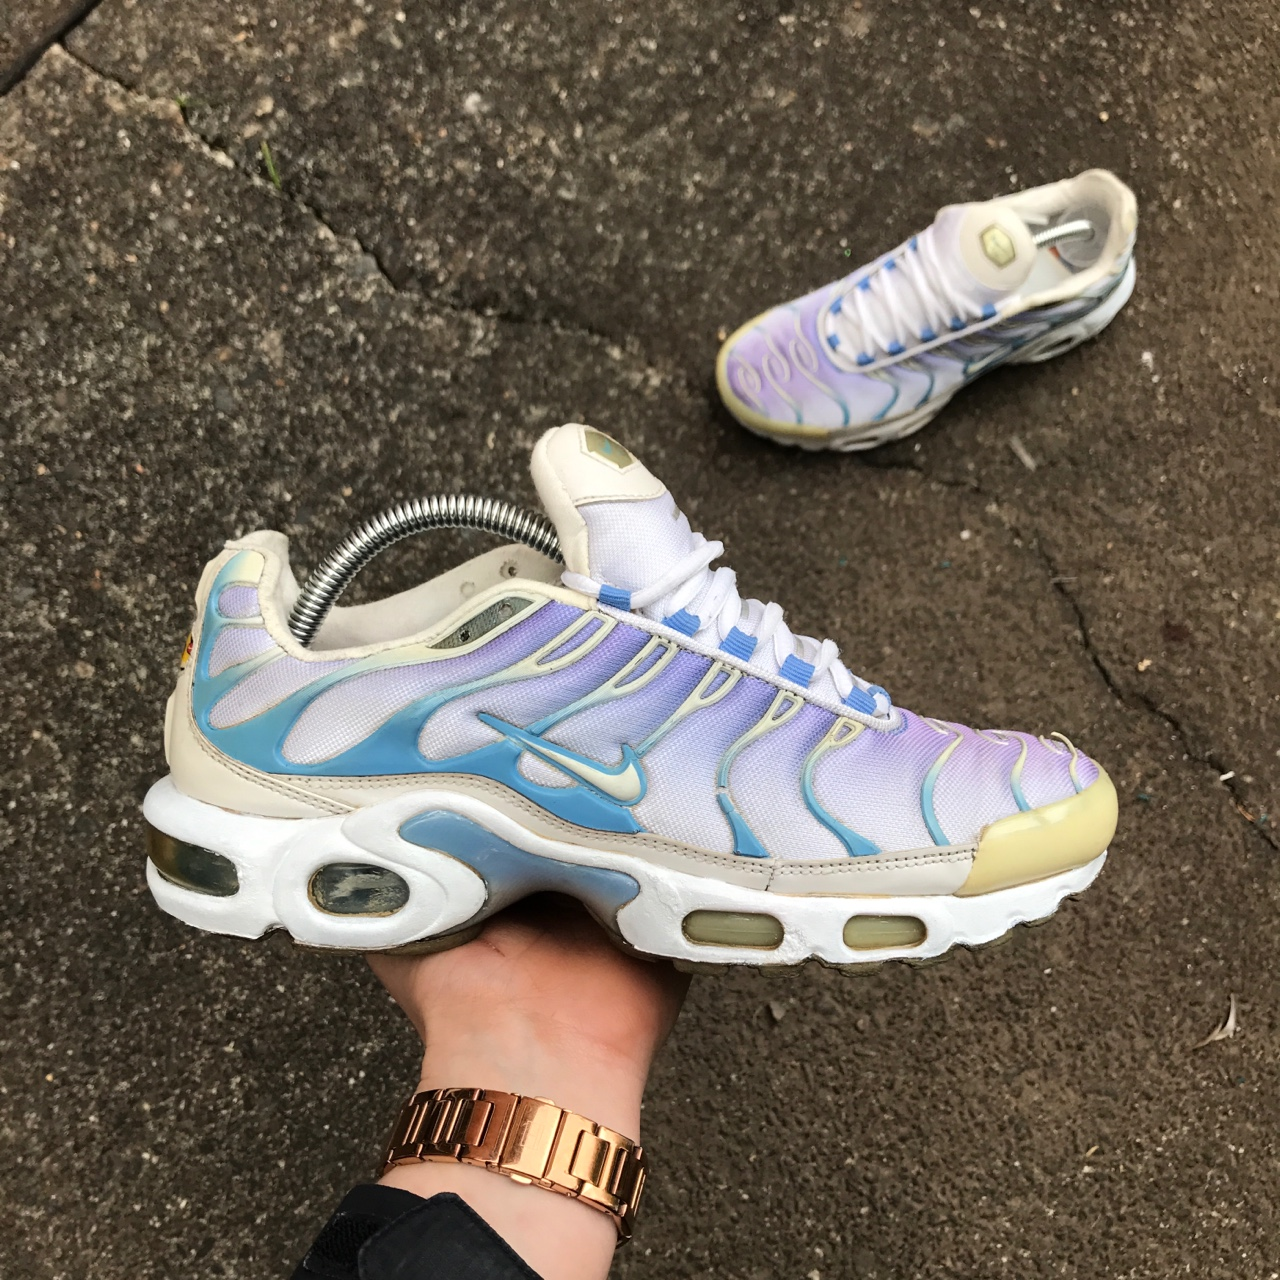 2007 WOMENS Nike Air Max Plus Tn Depop